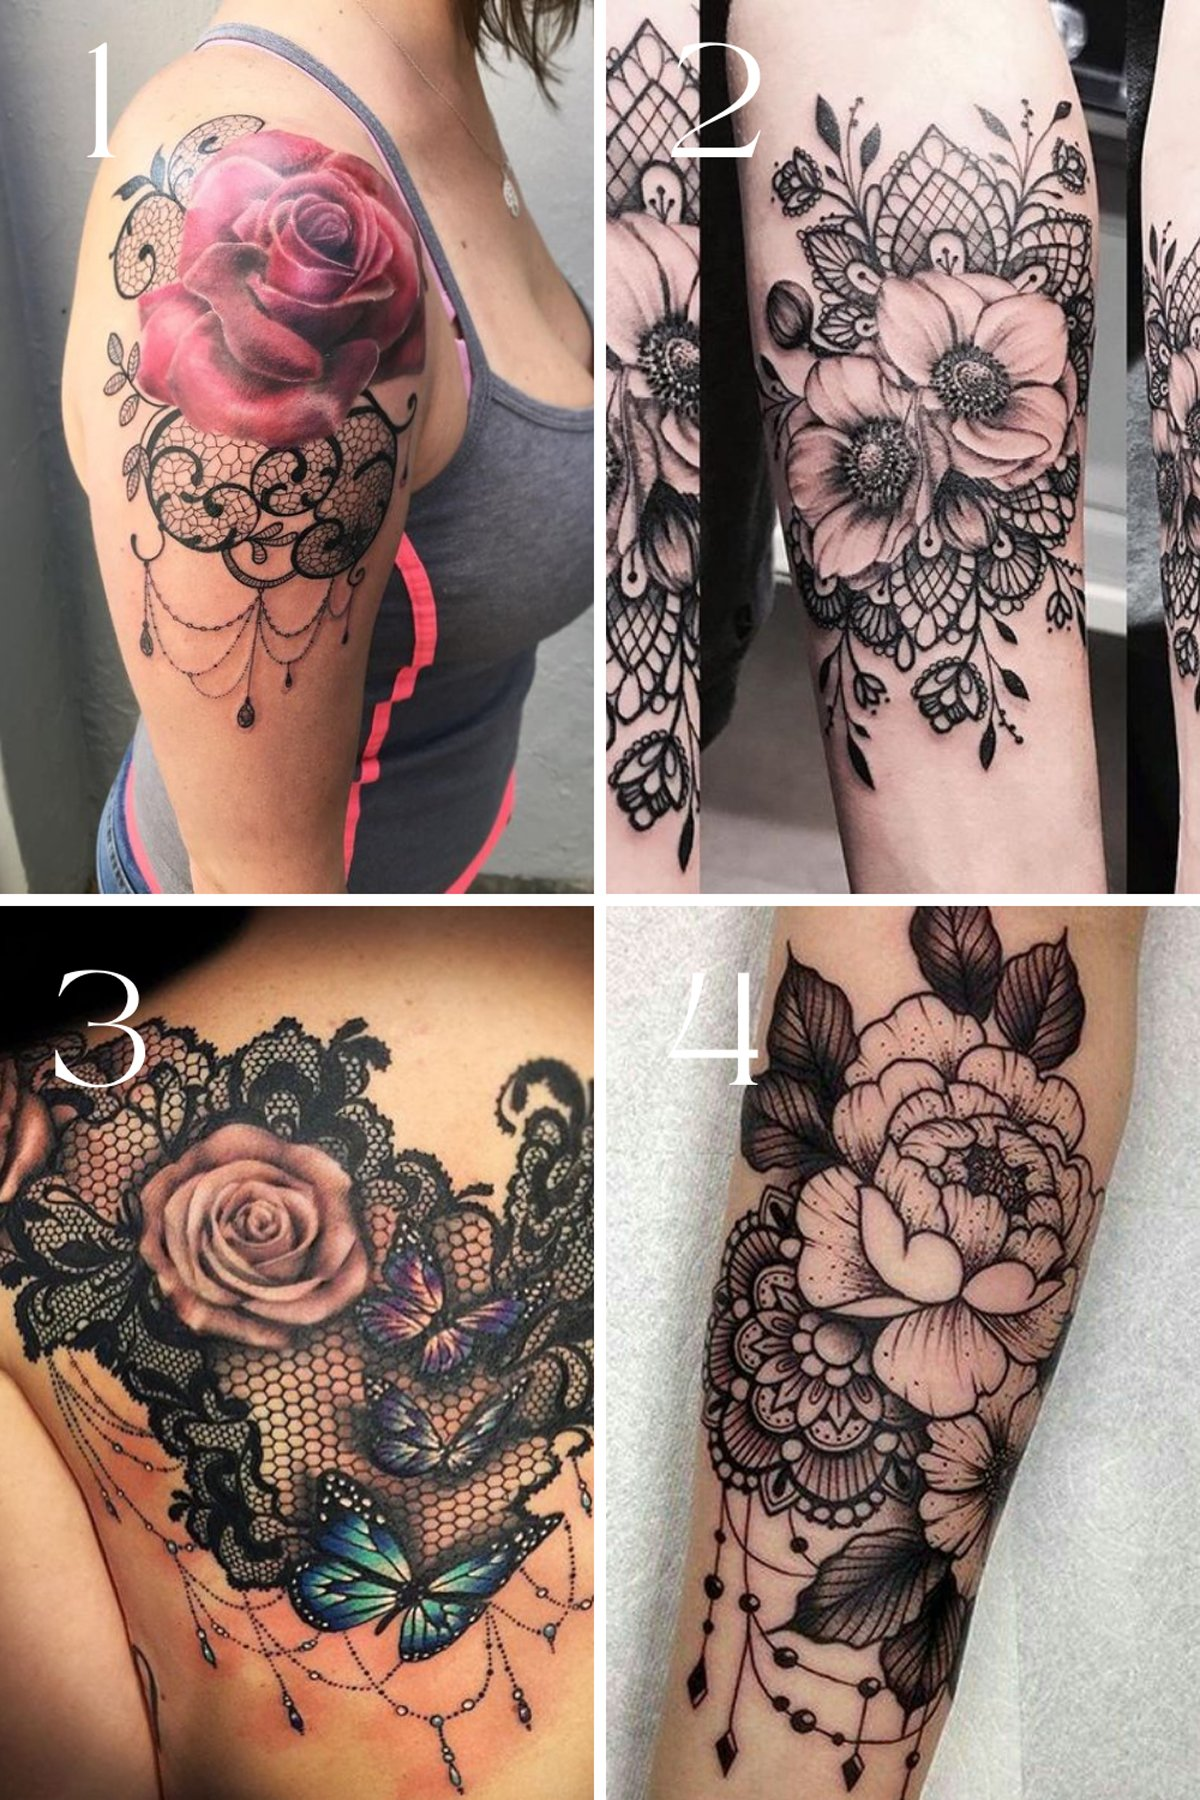 Lace tattoo design with flowers